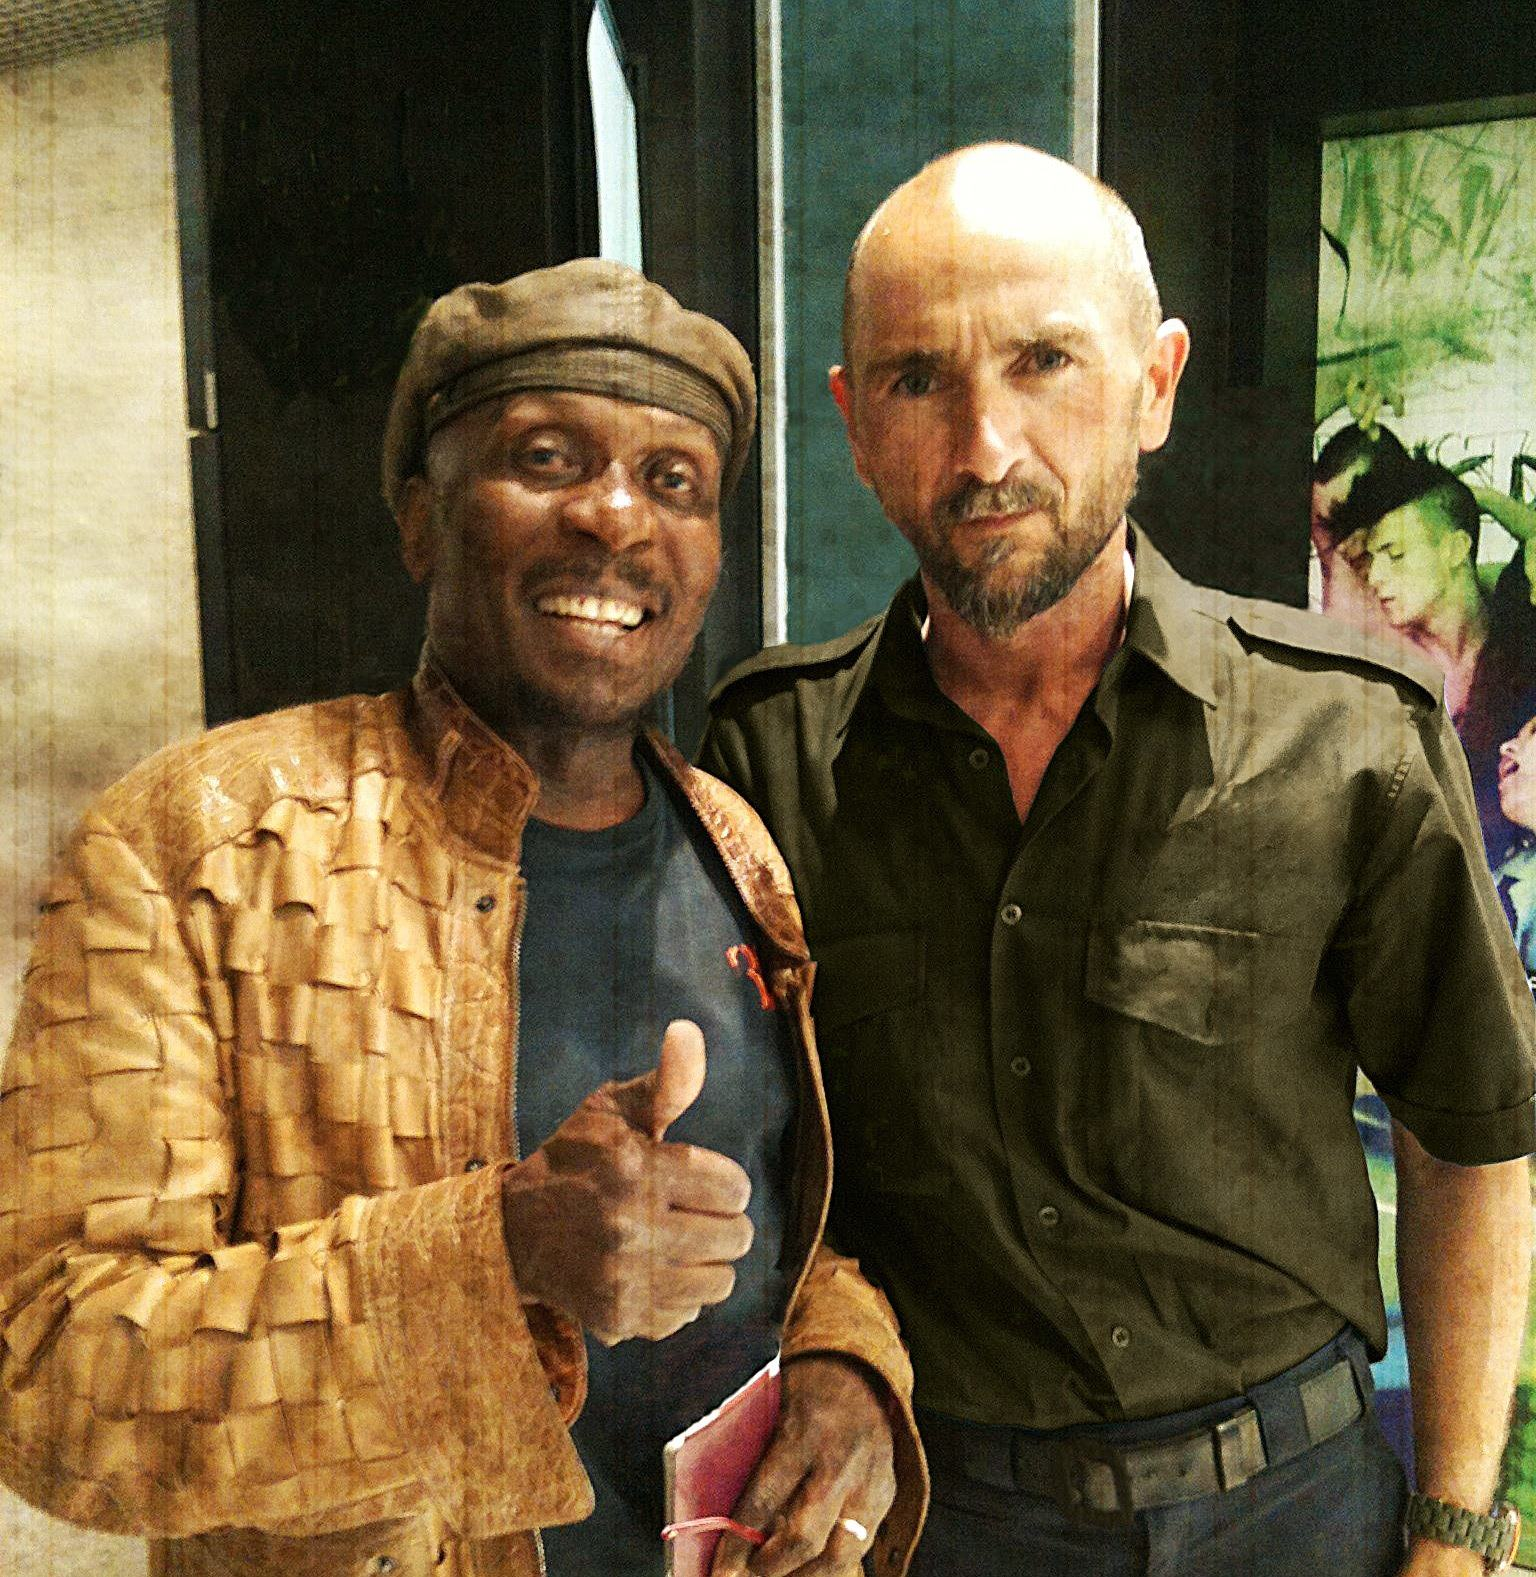 Mr. Jimmy Cliff